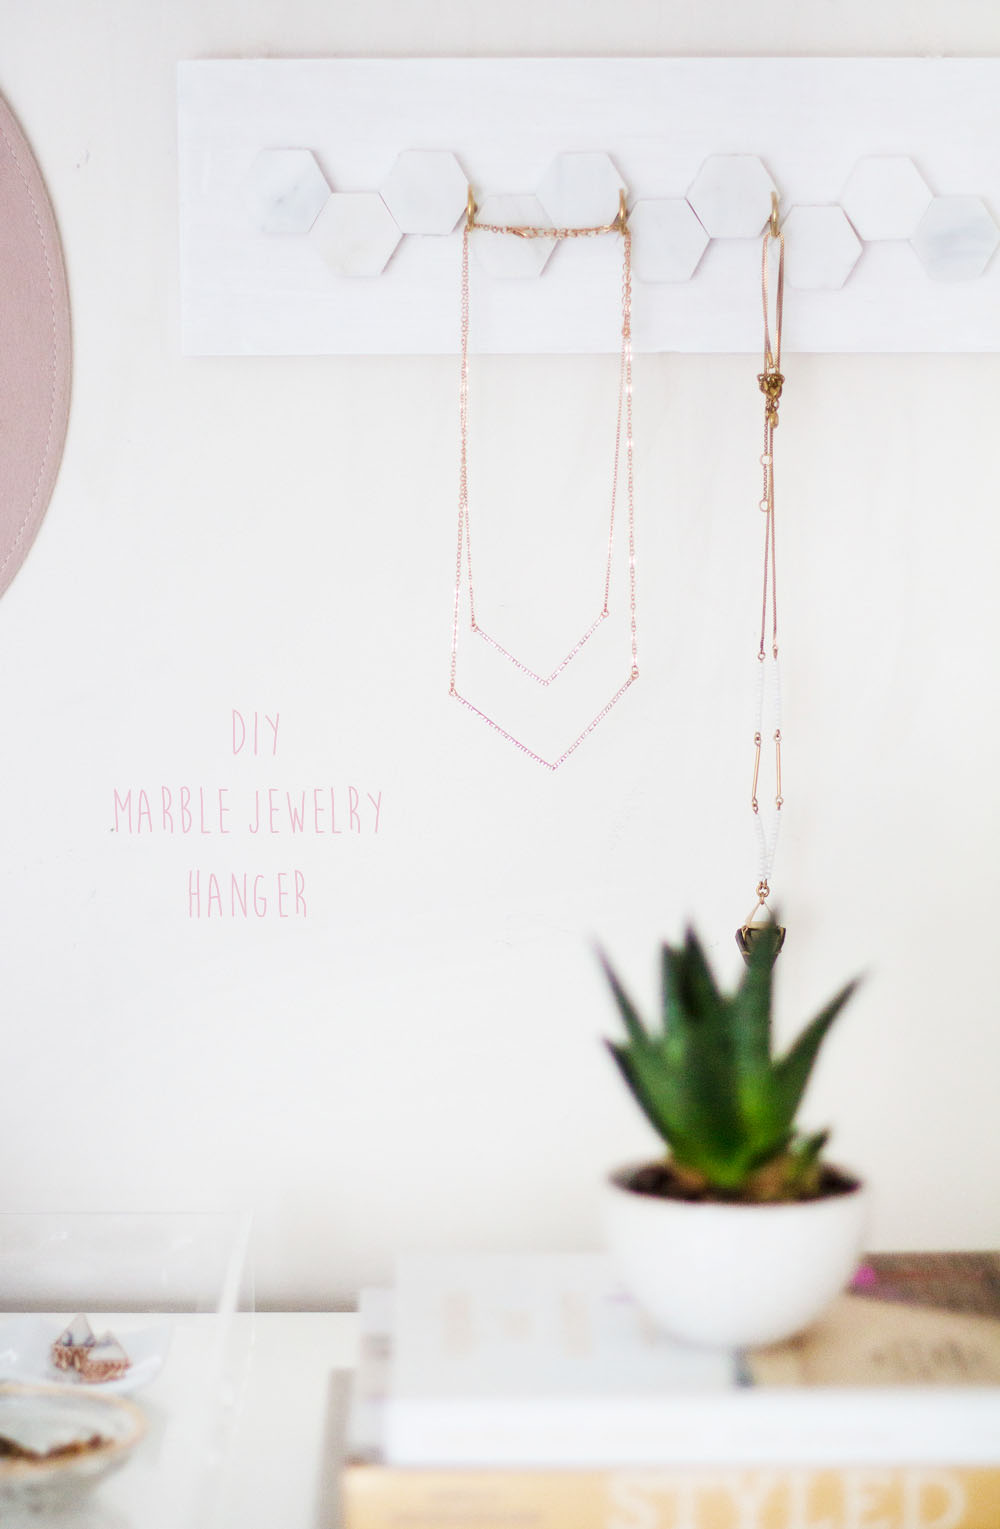 diy_jewelry_hanger_1